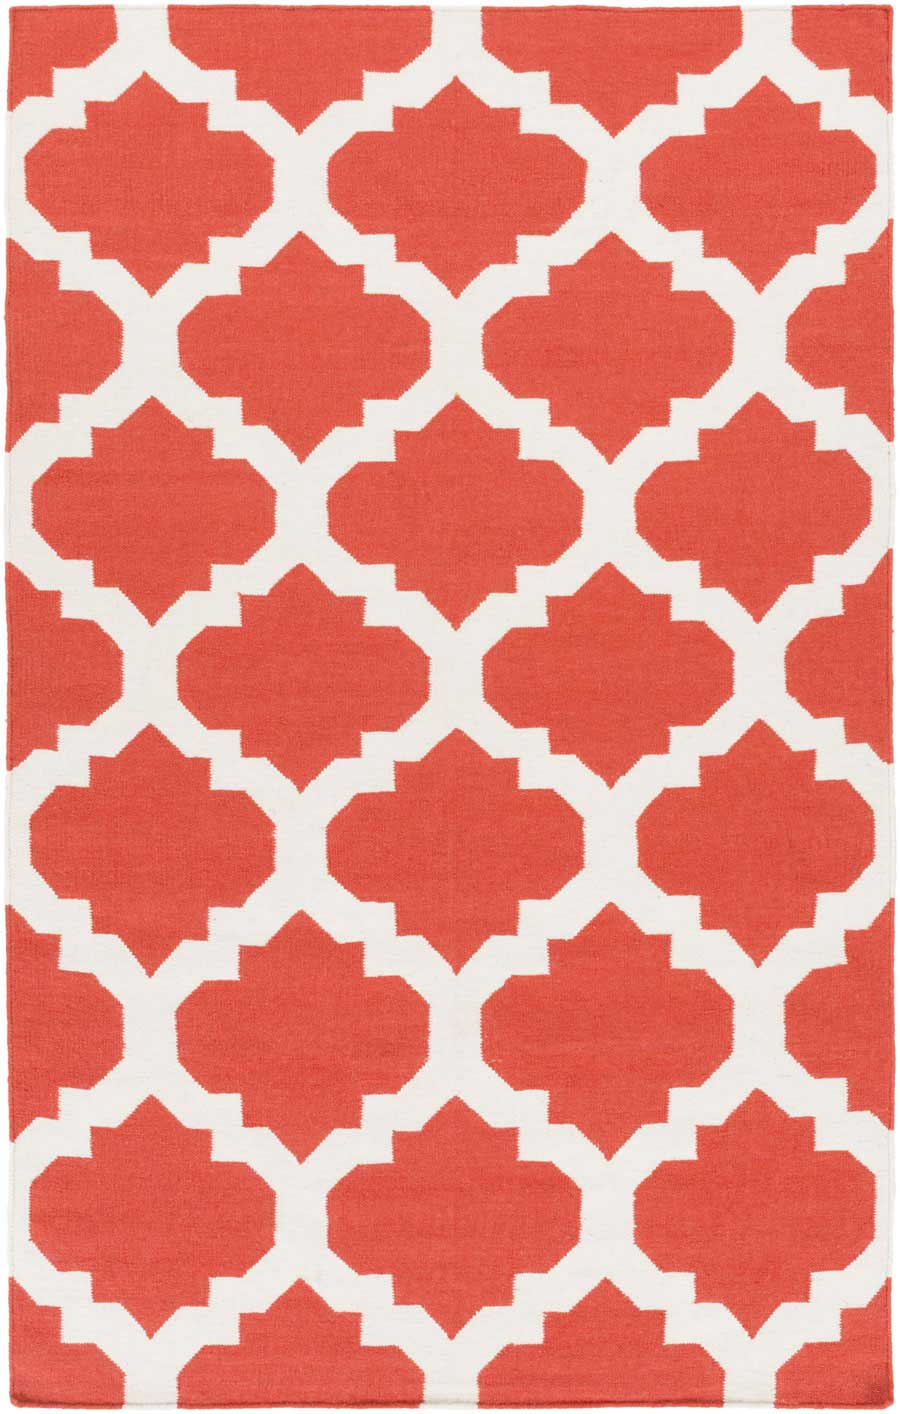 Weavers York Harlow AWHD1030 Coral White Area Rug Payless Rugs